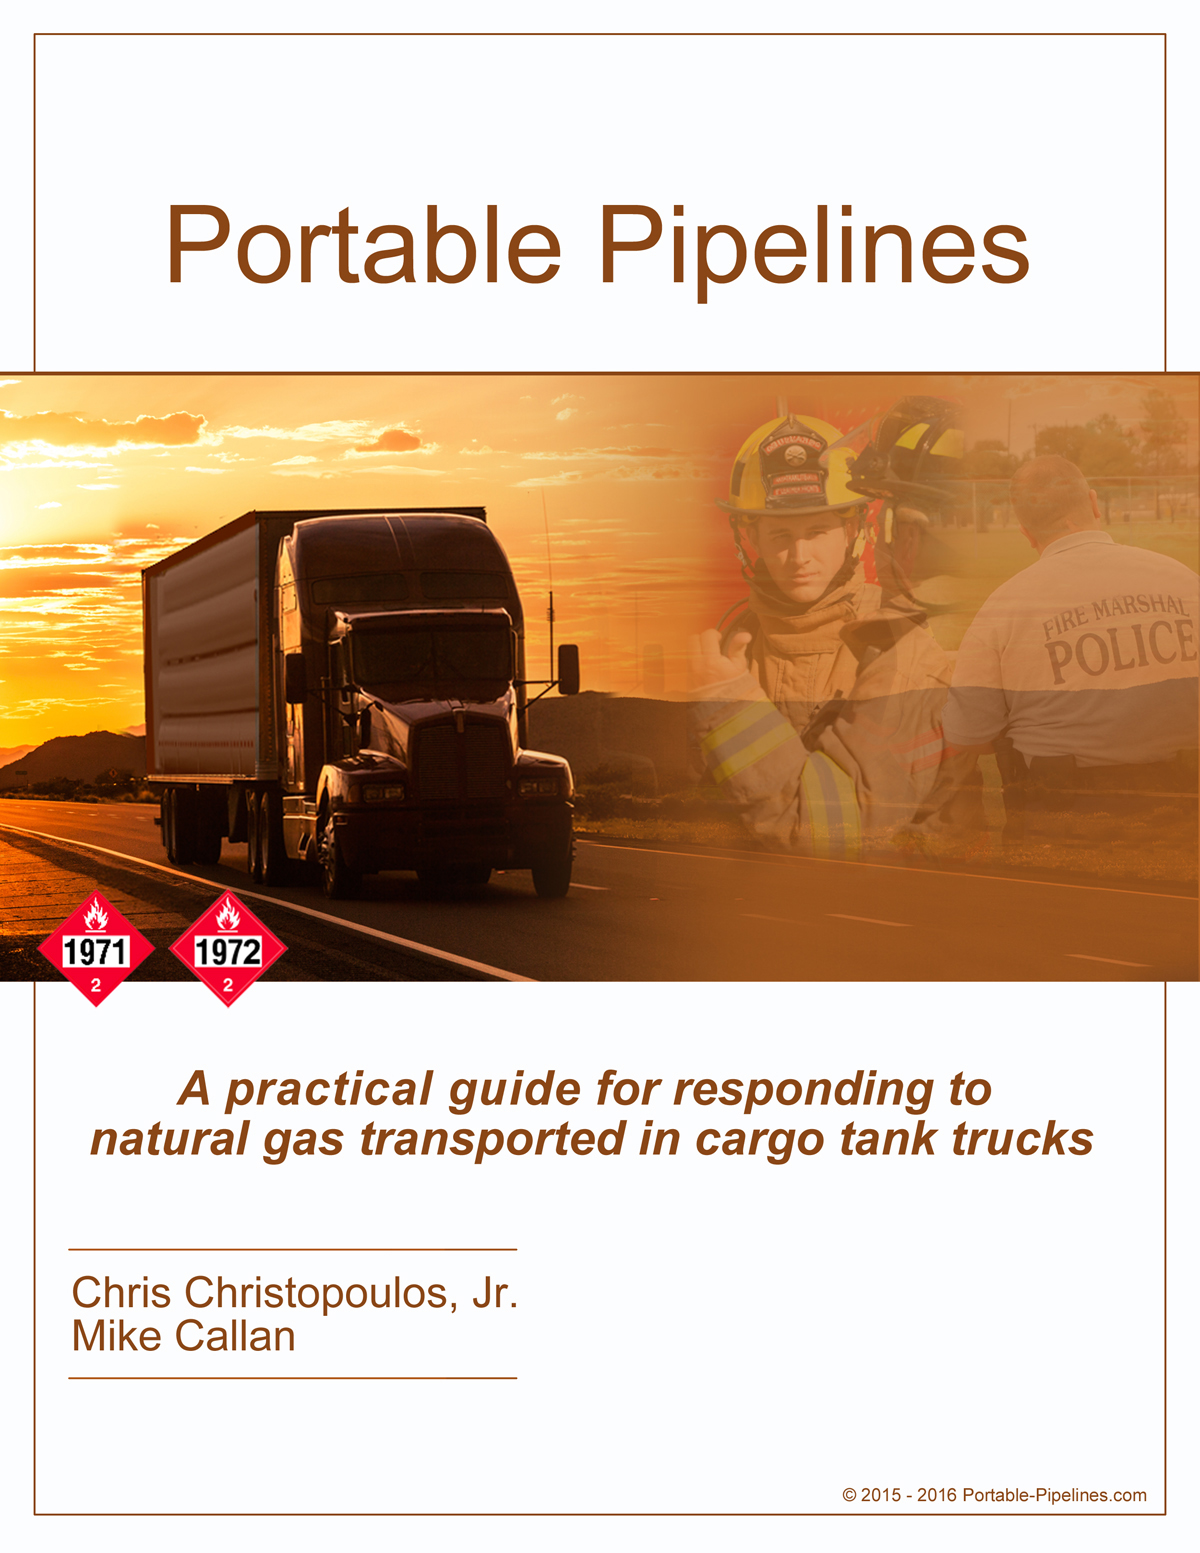 A practical guide for responding to natural gas transported in cargo tank trucks